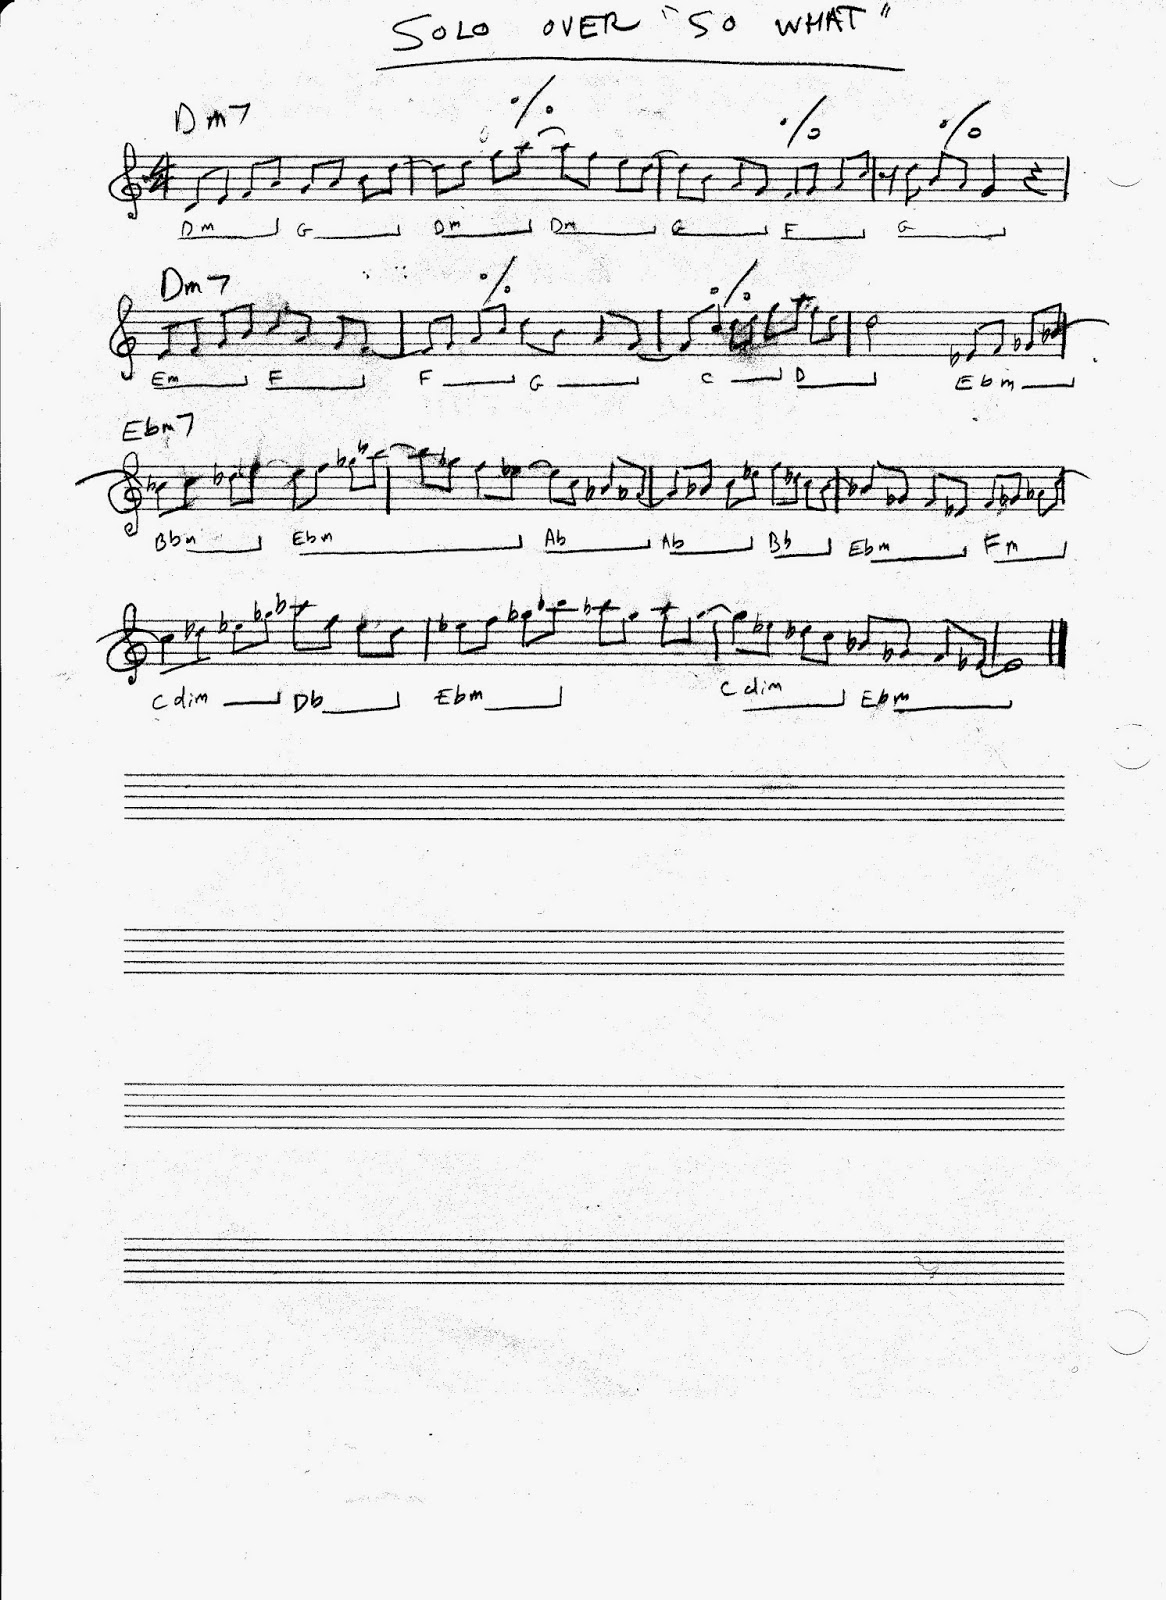 Overall impression of musical composition essay examples